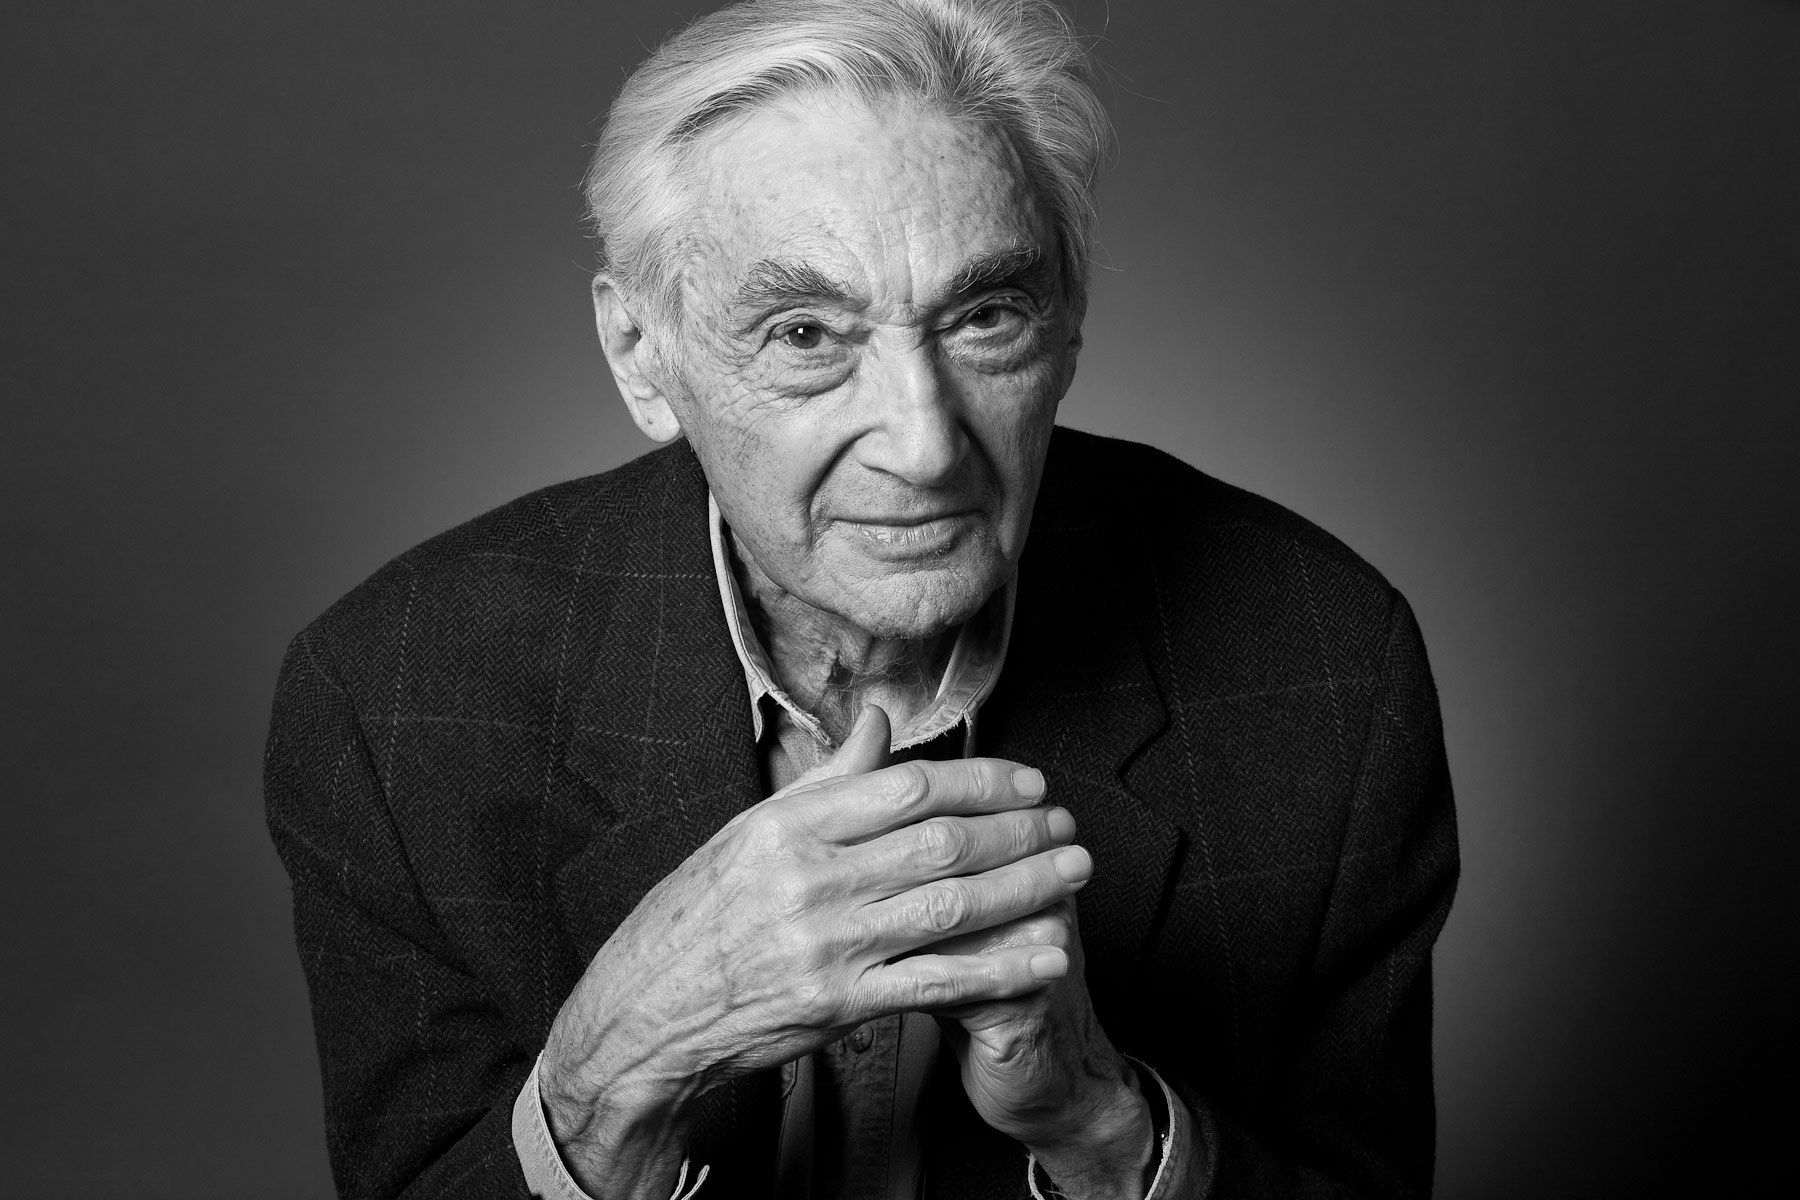 Howard Zinn, historian, chronicled centuries of people's struggles against oppression